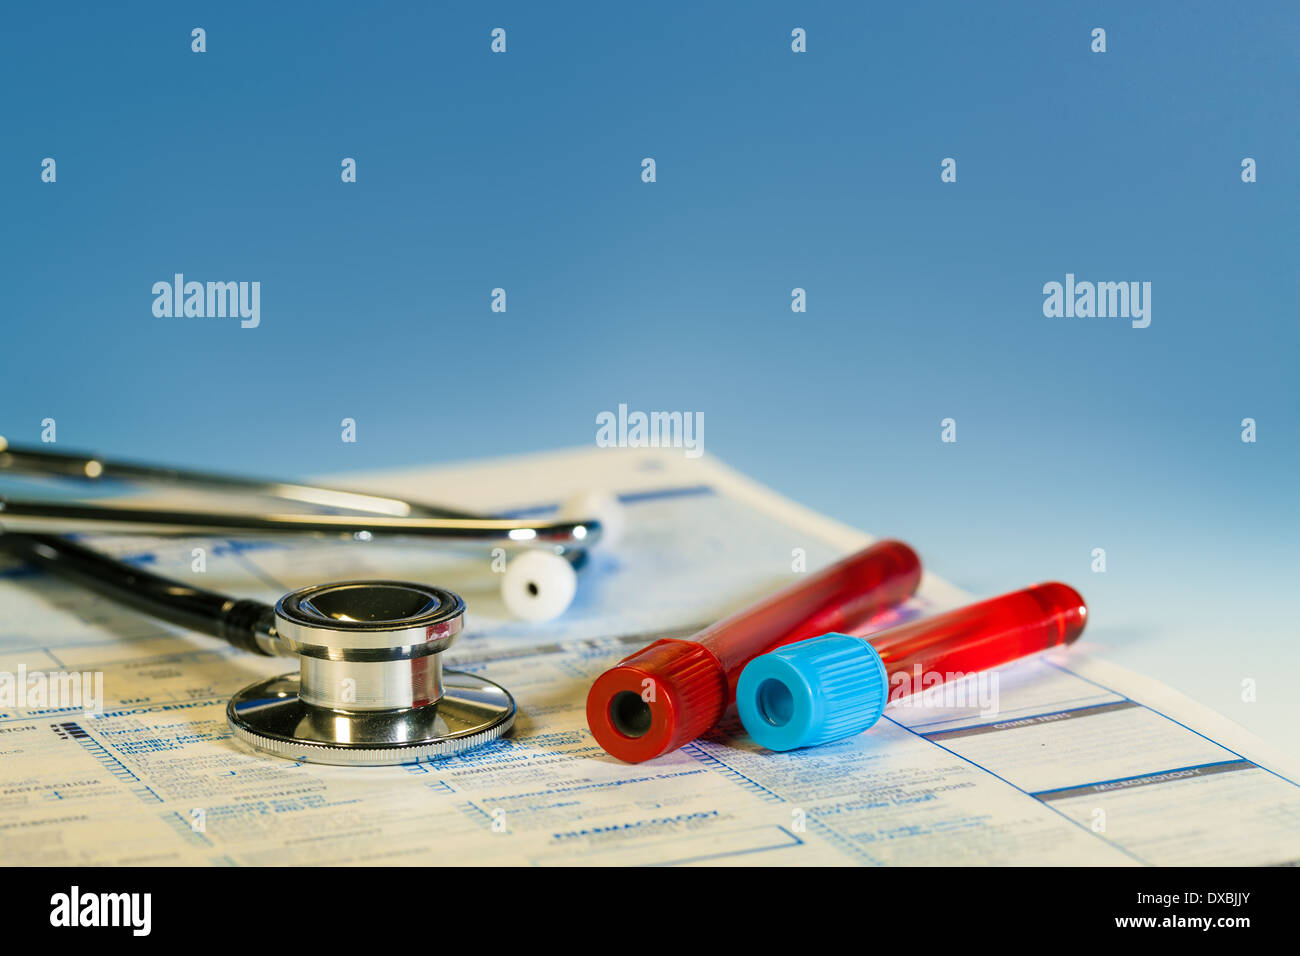 Blood sample and stethoscope - Stock Image